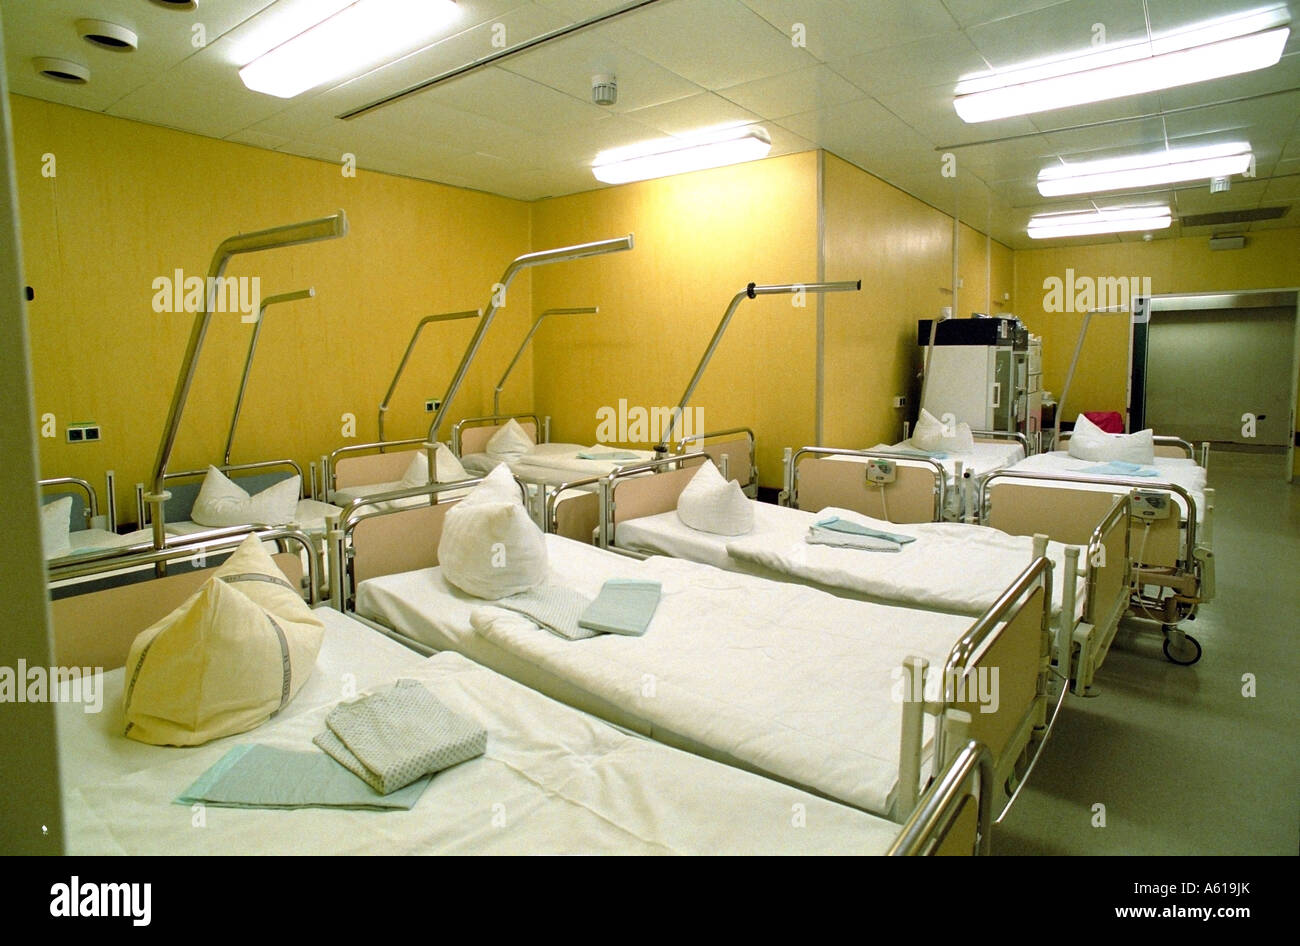 Empty beds in a hospital - Stock Image